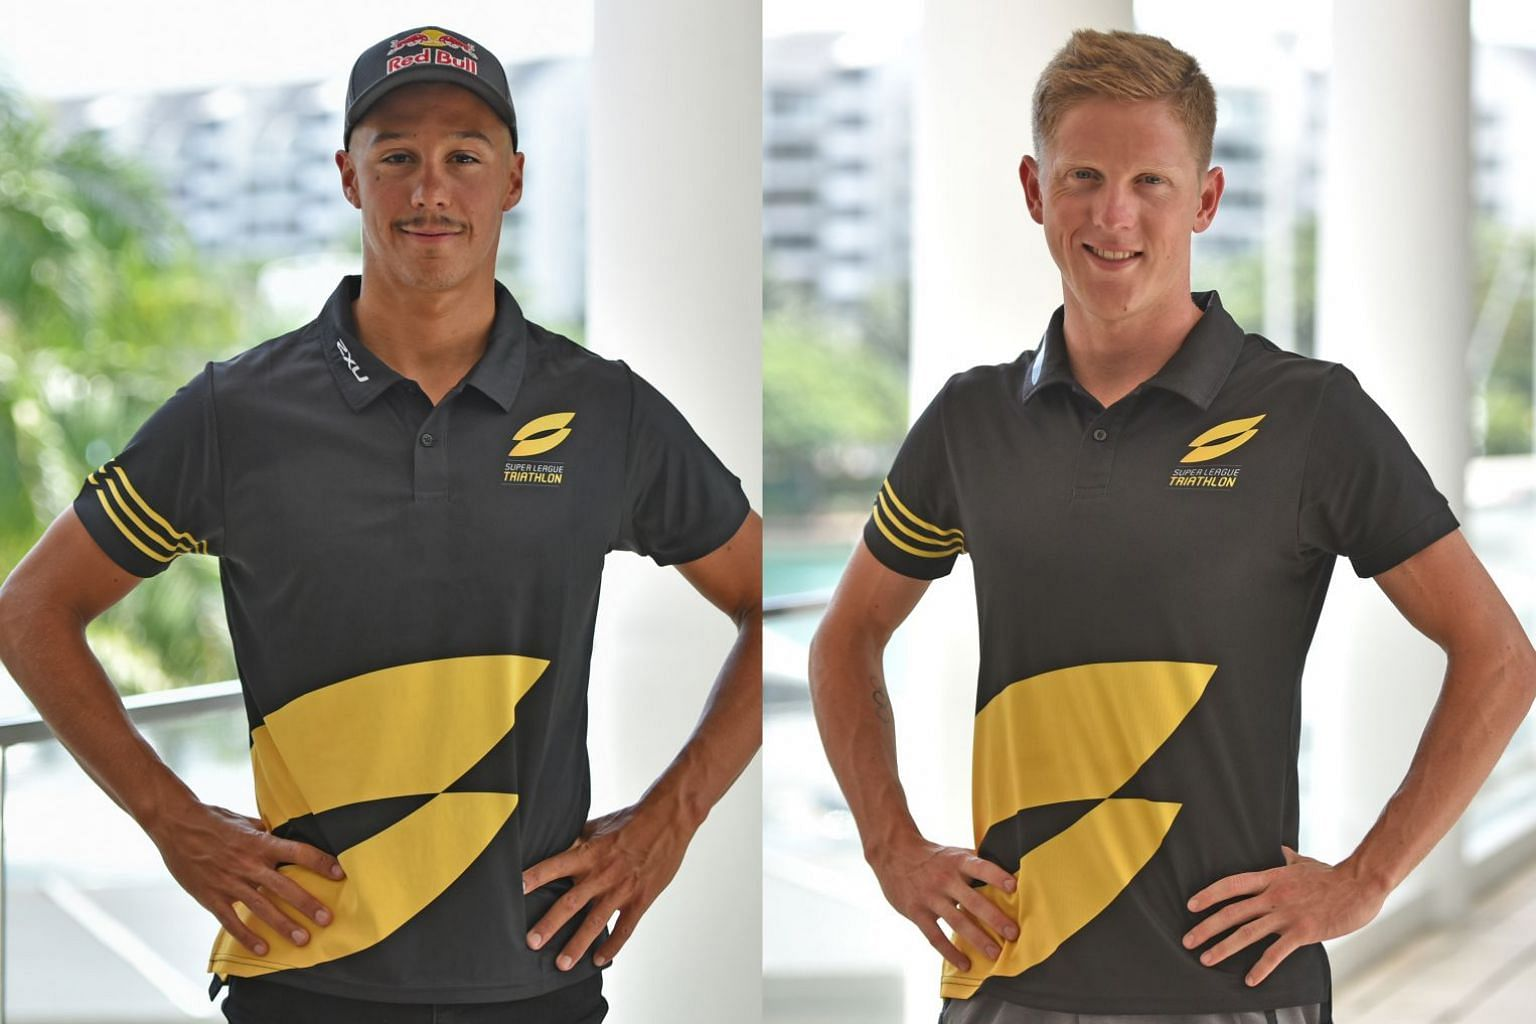 Series leader Vincent Luis (left) will be out to keep challenger Henri Schoeman at bay in the finale of the Super League Triathlon starting today at the One°15 Marina.